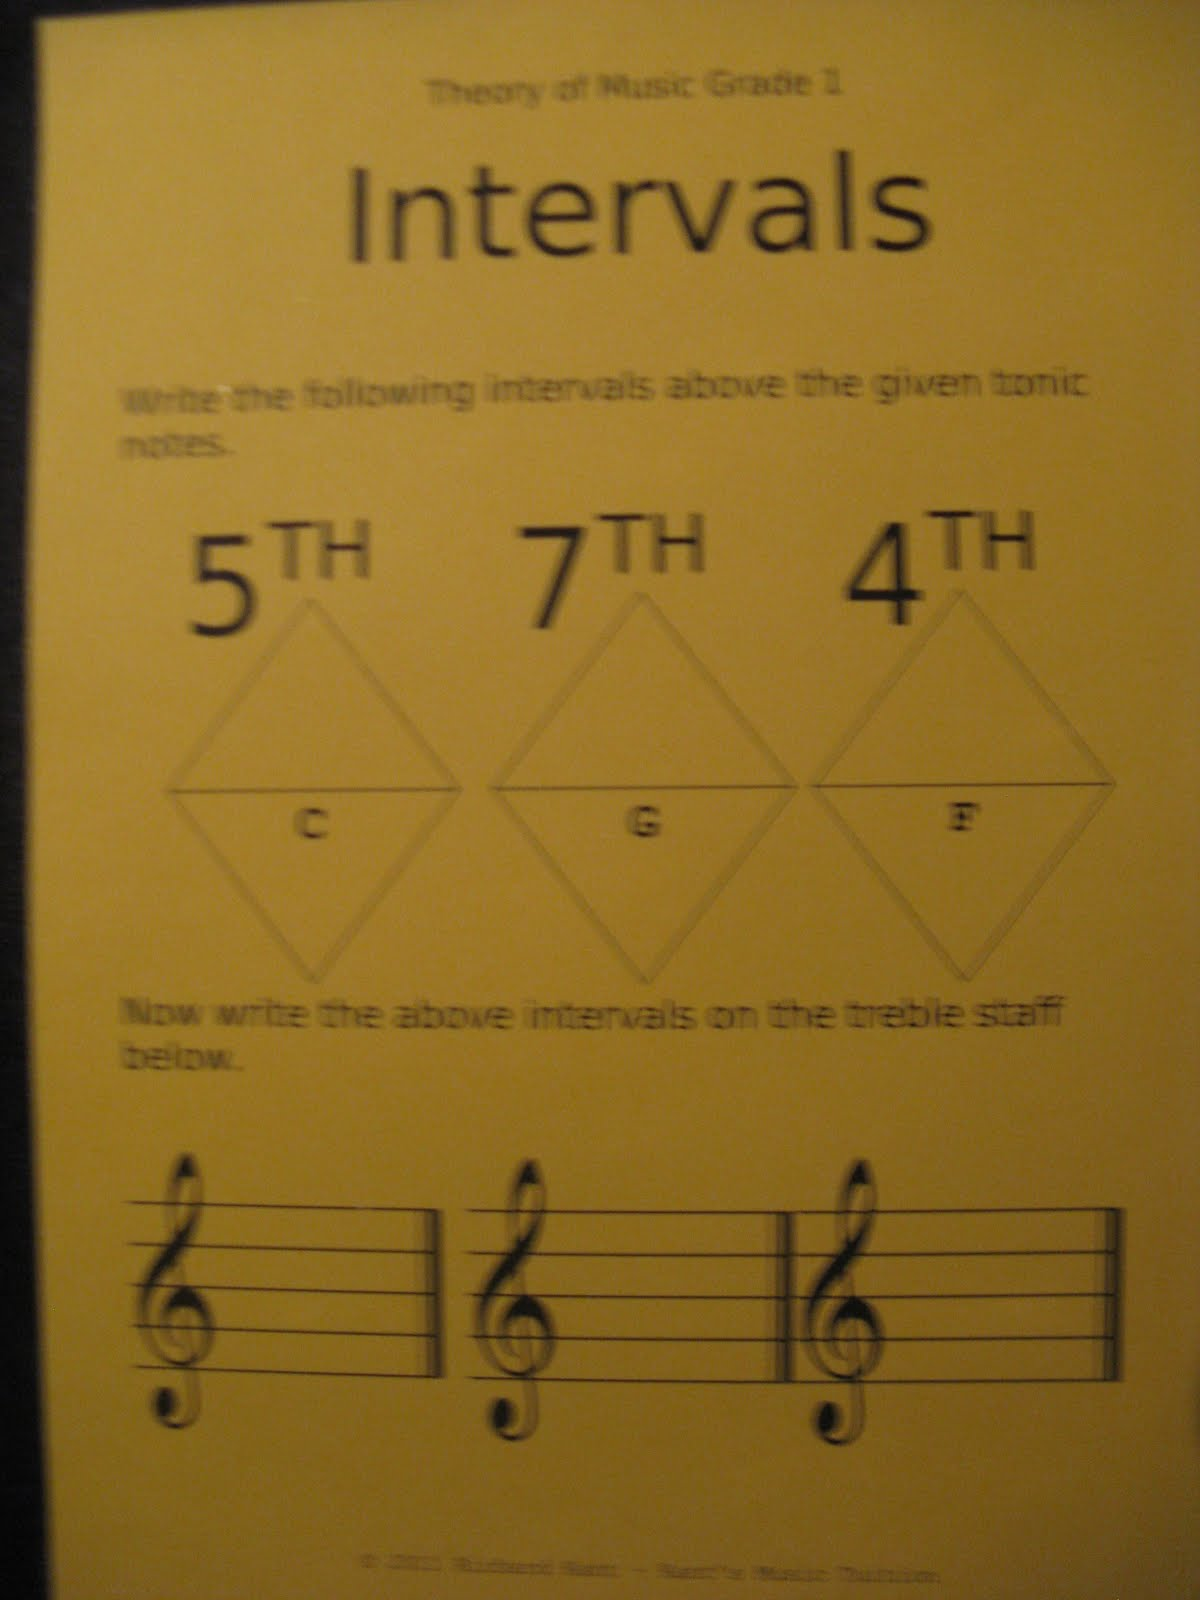 Piano Practice Tips Intervals Worksheet Ameb Theory Of Music